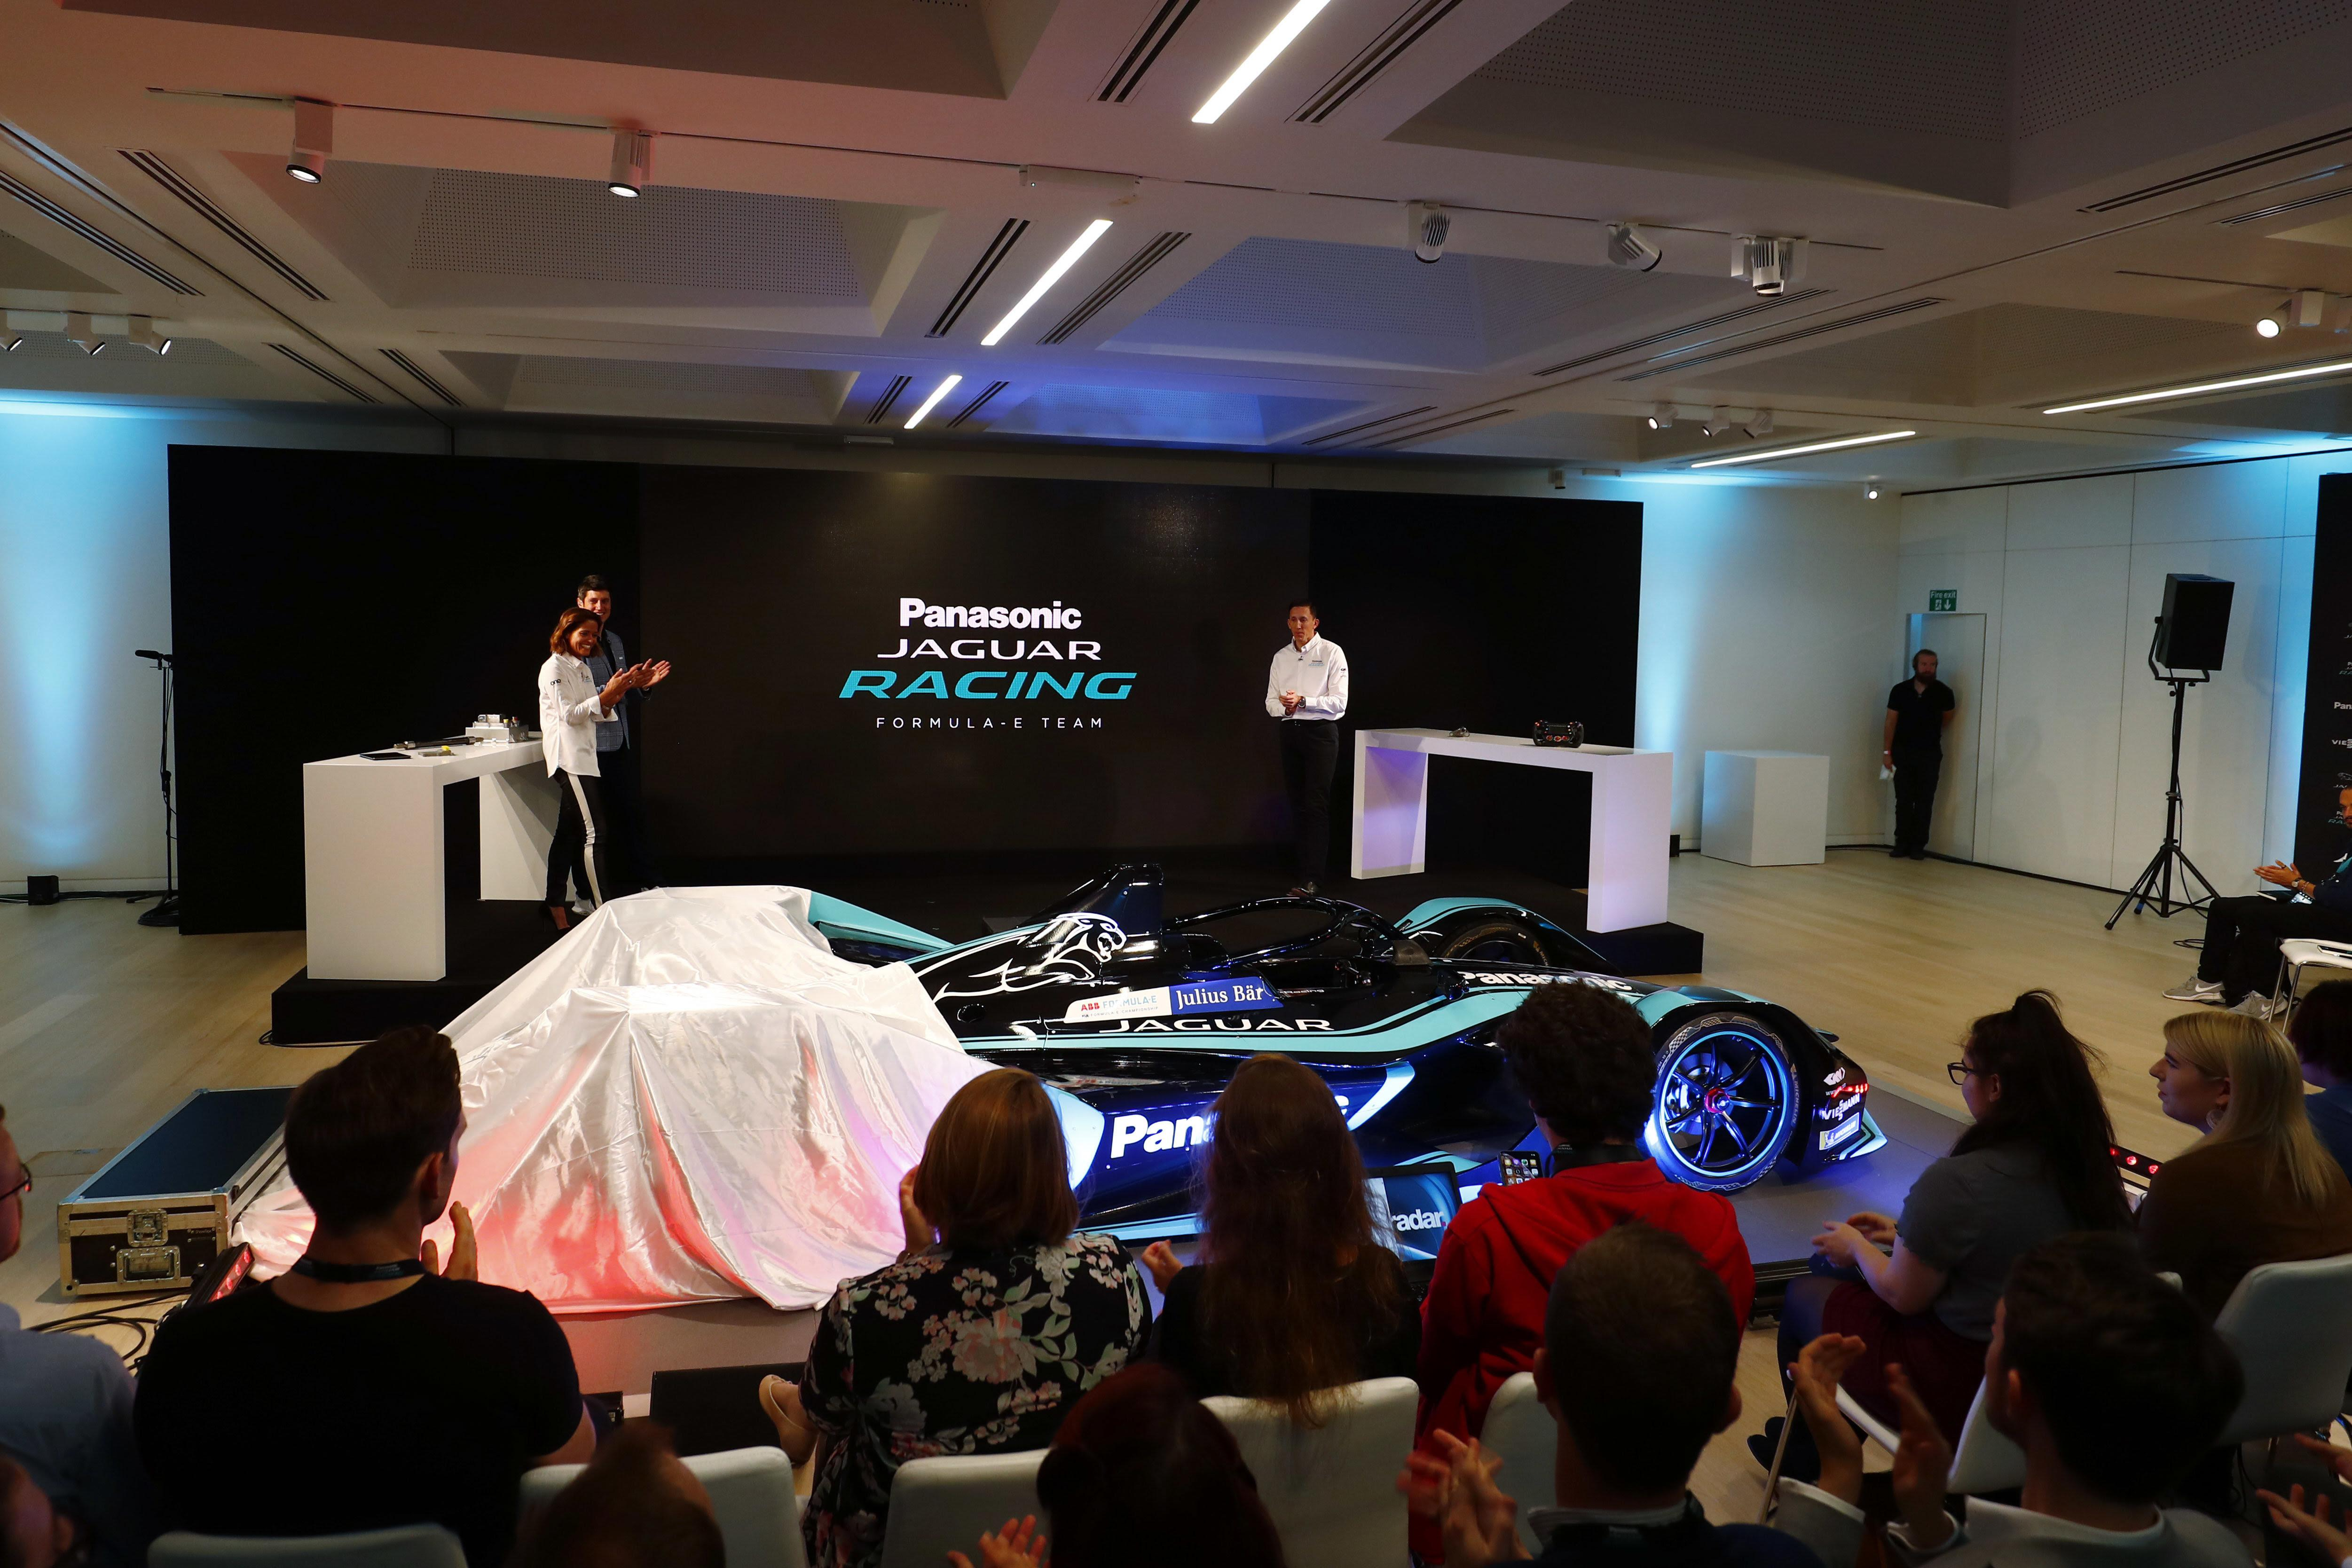 Panasonic Jaguar launched their Gen2 car at the The National Design Museum